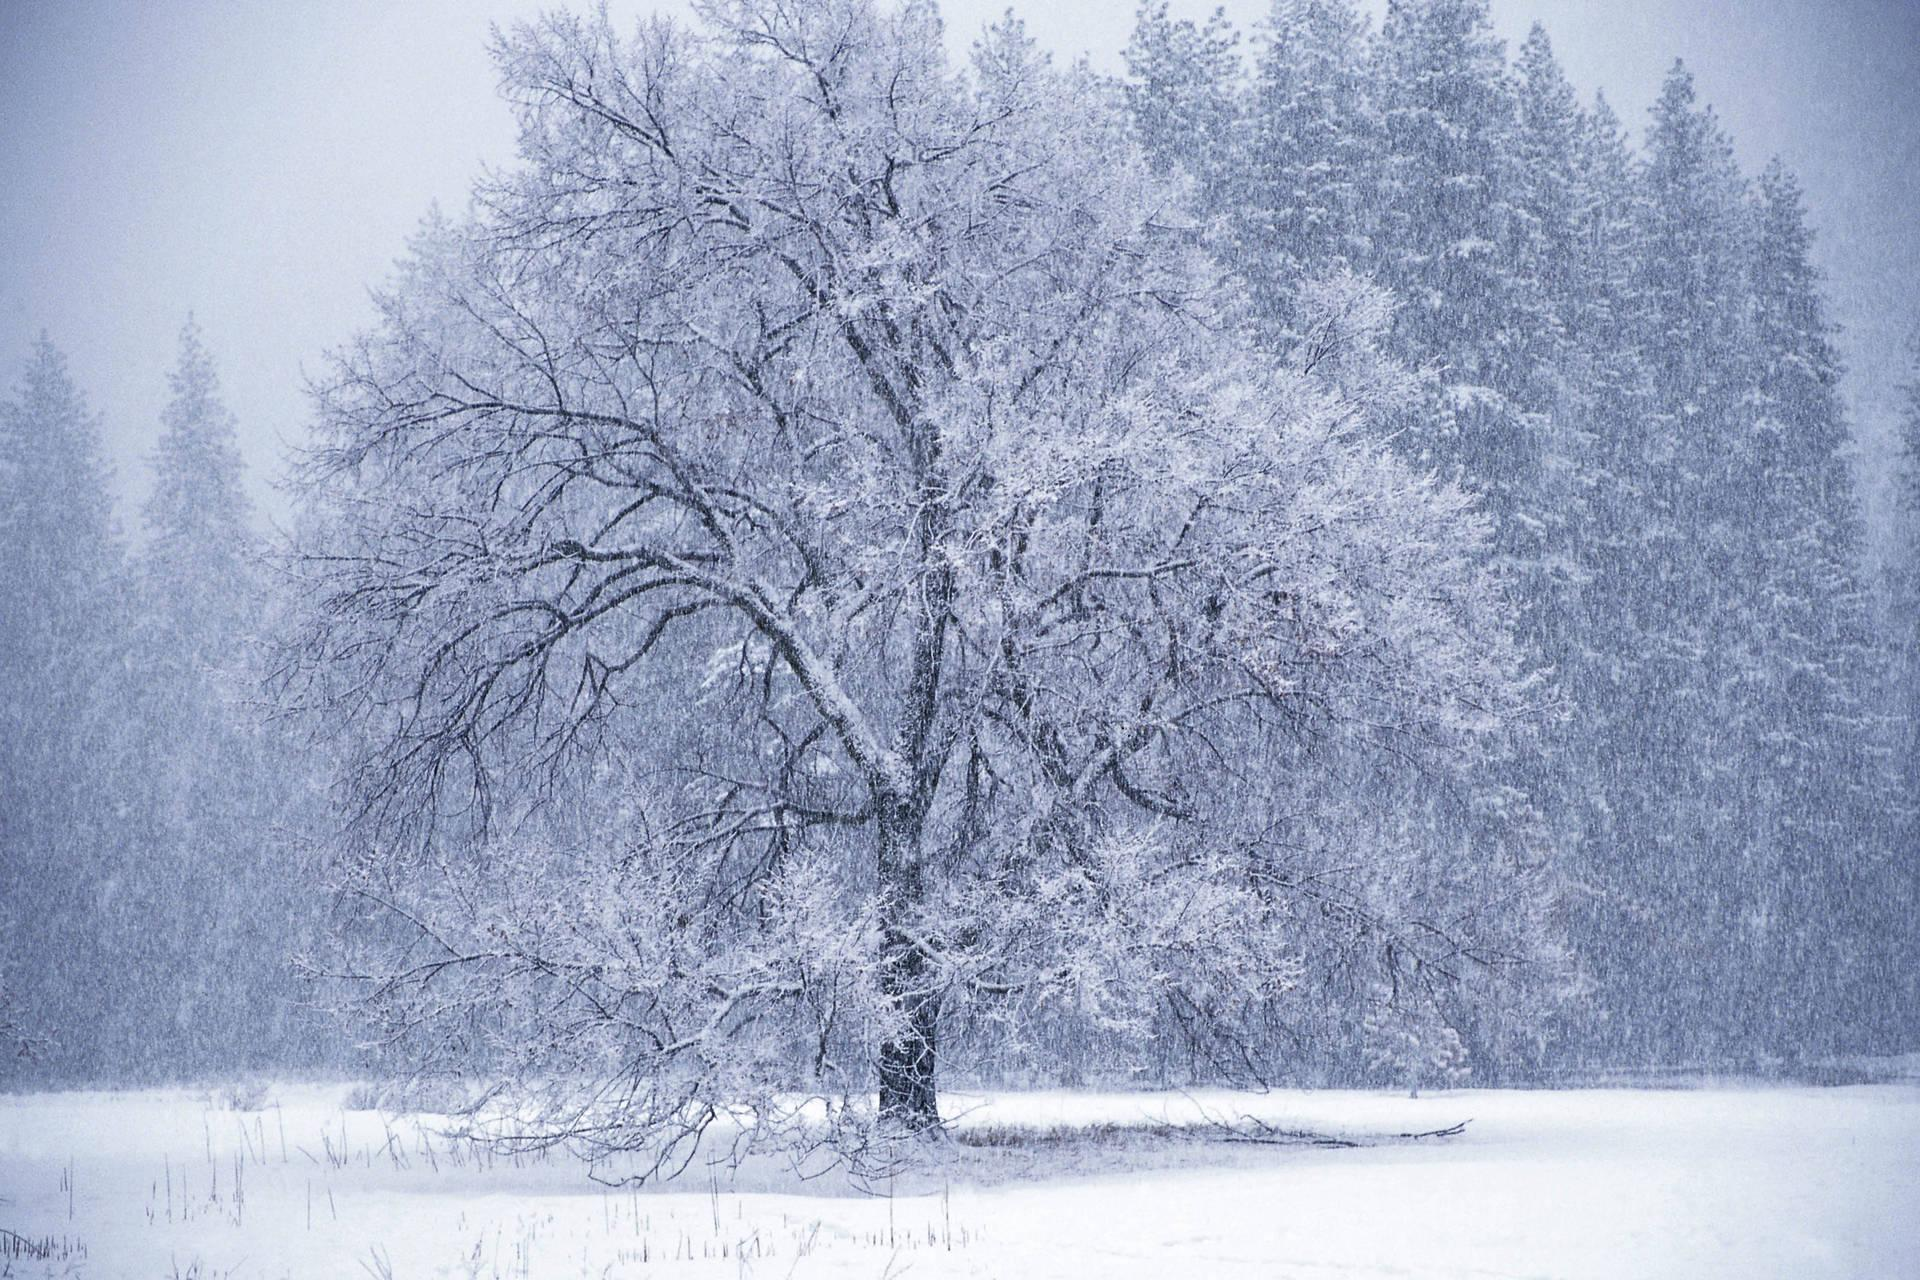 Winter tree snow storm Wallpaper 1444369814